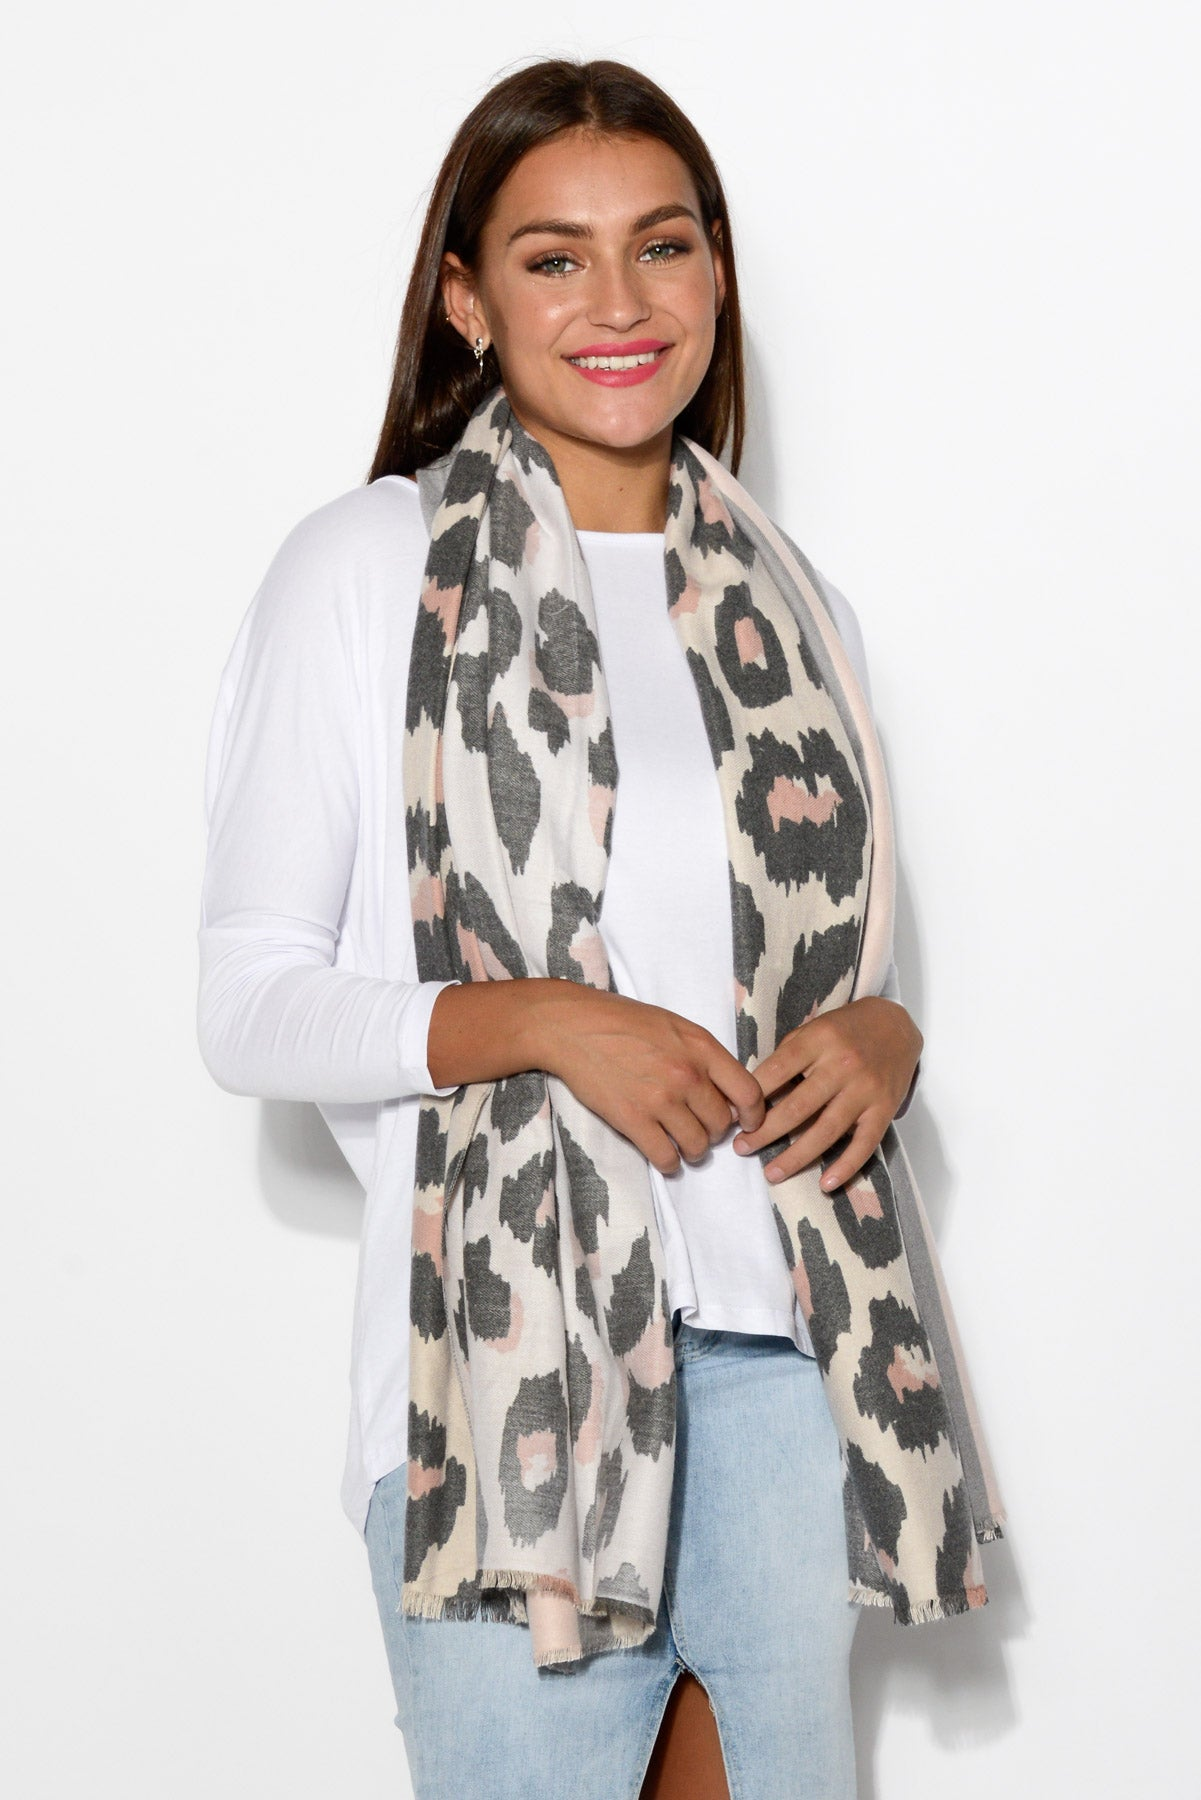 Claudia Blush Leopard Scarf - Blue Bungalow